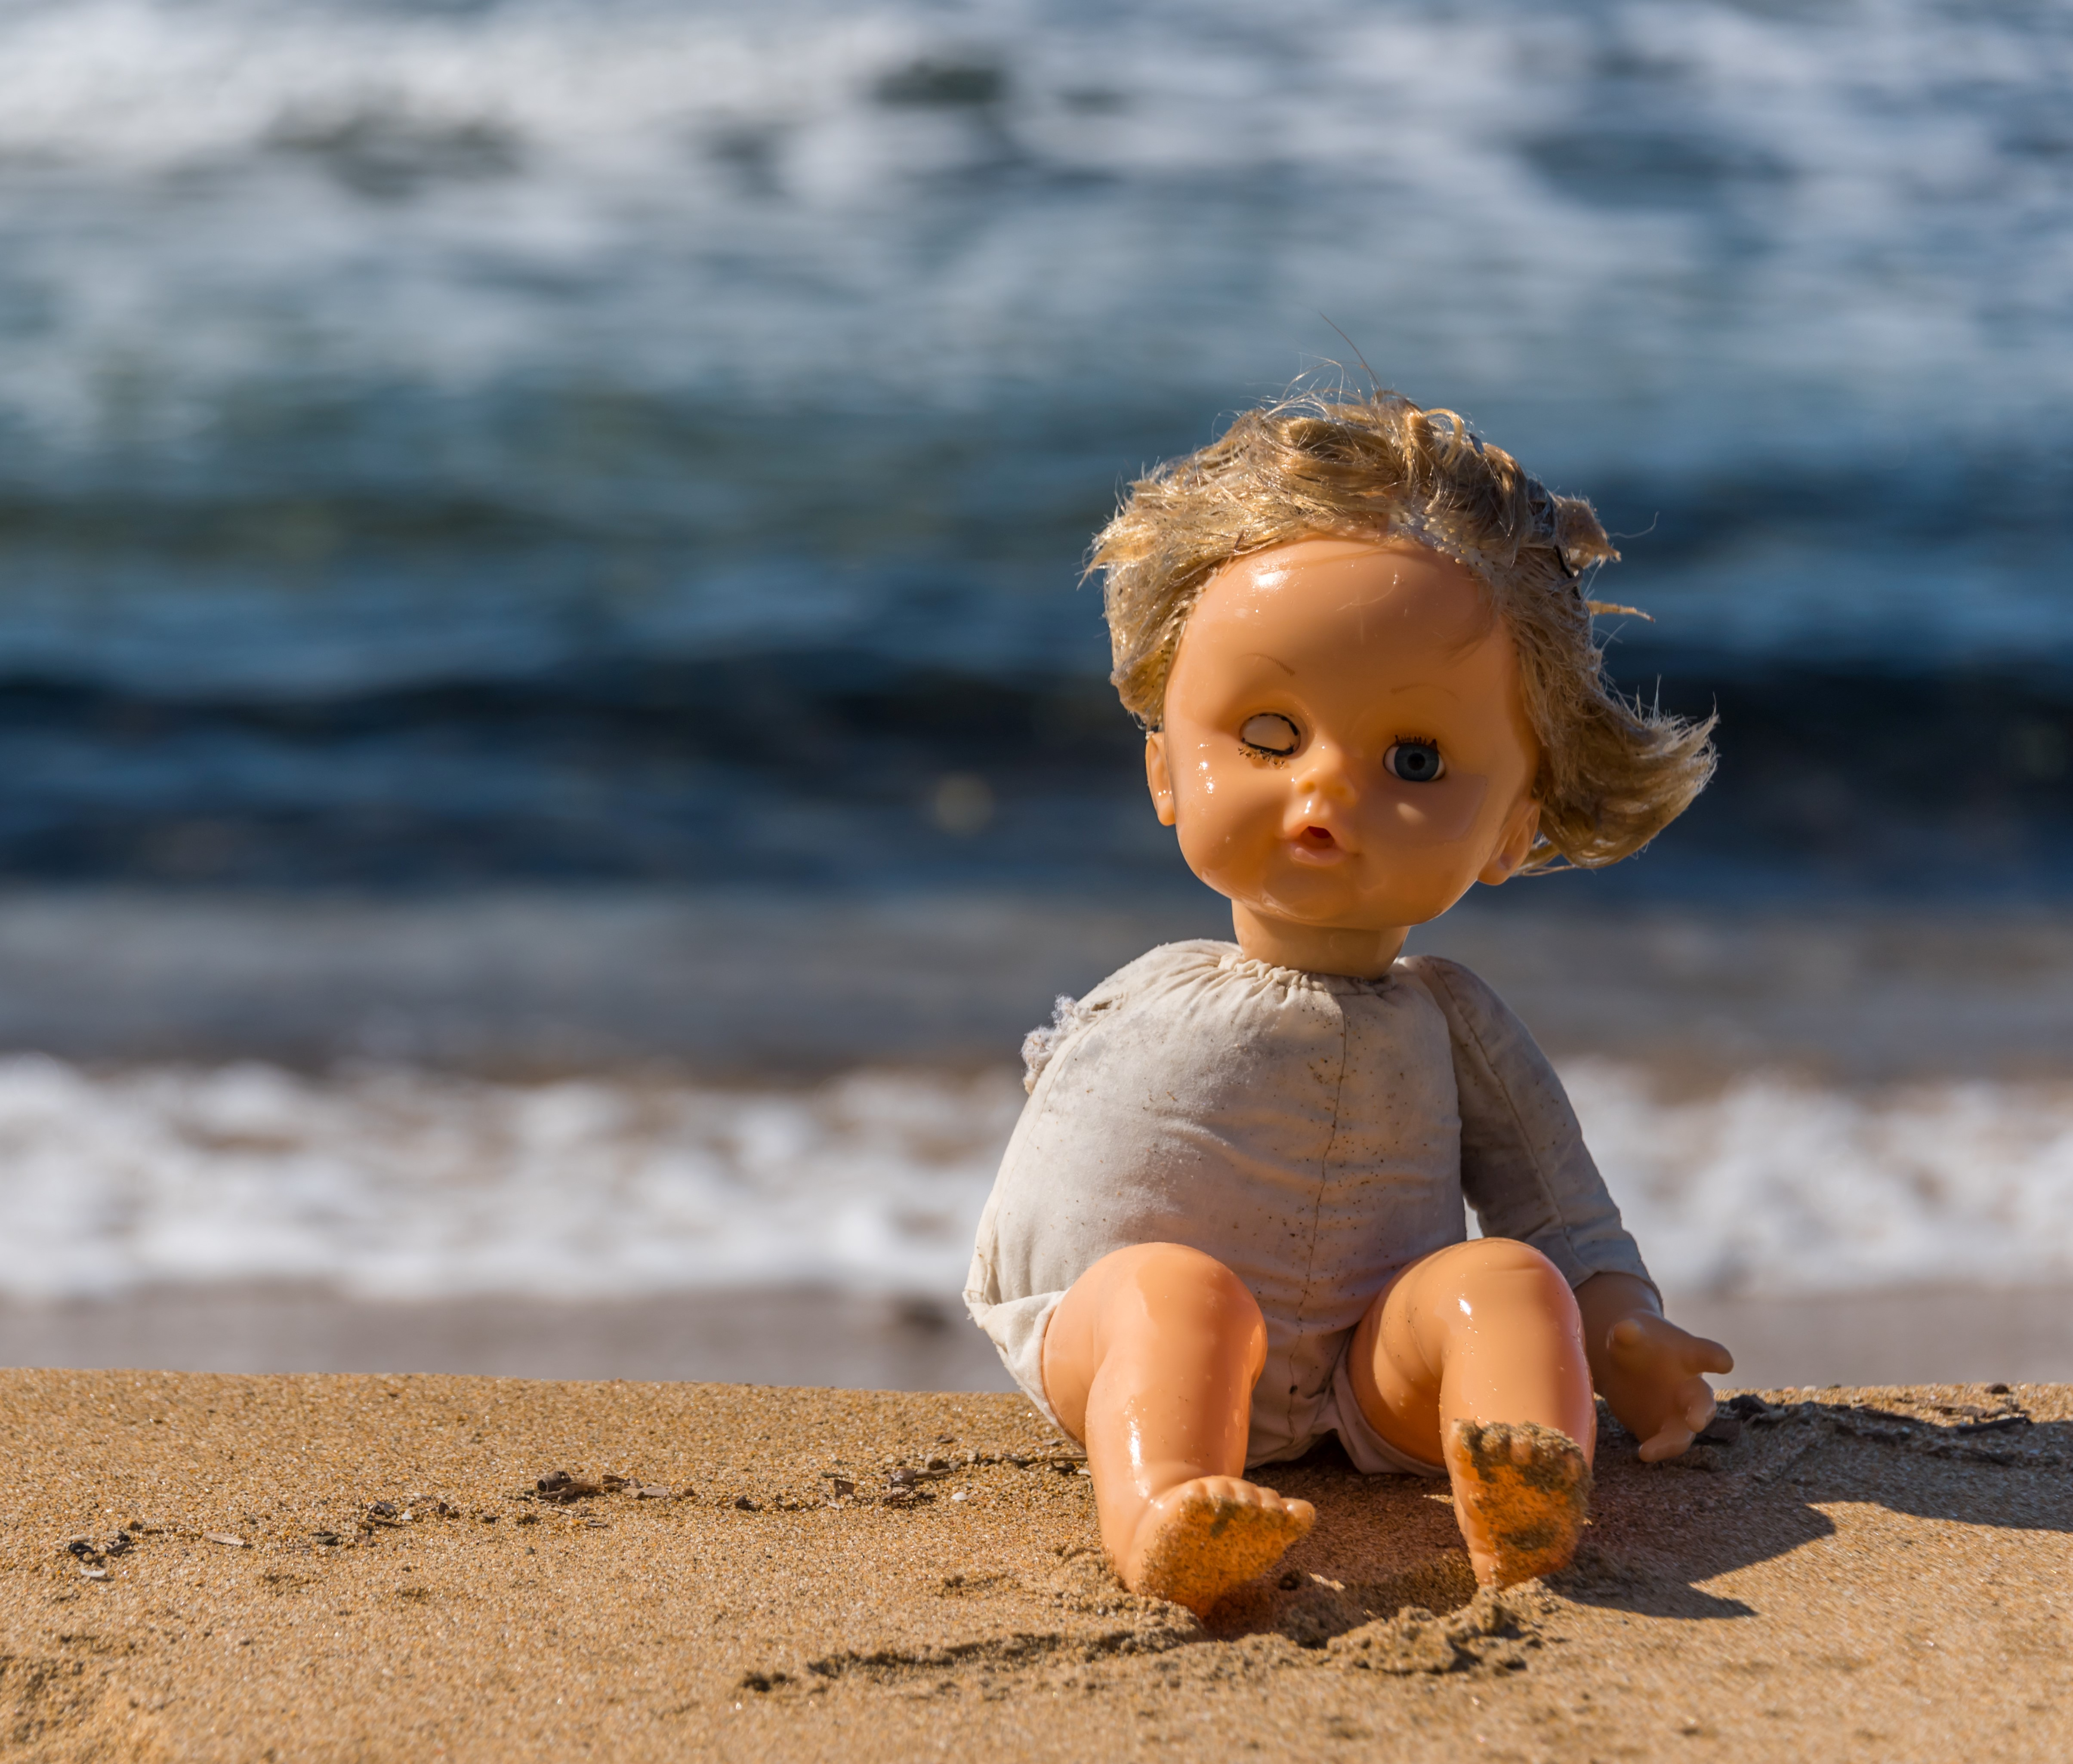 Old Broken Toy Doll Sitting on a Beach in Italy